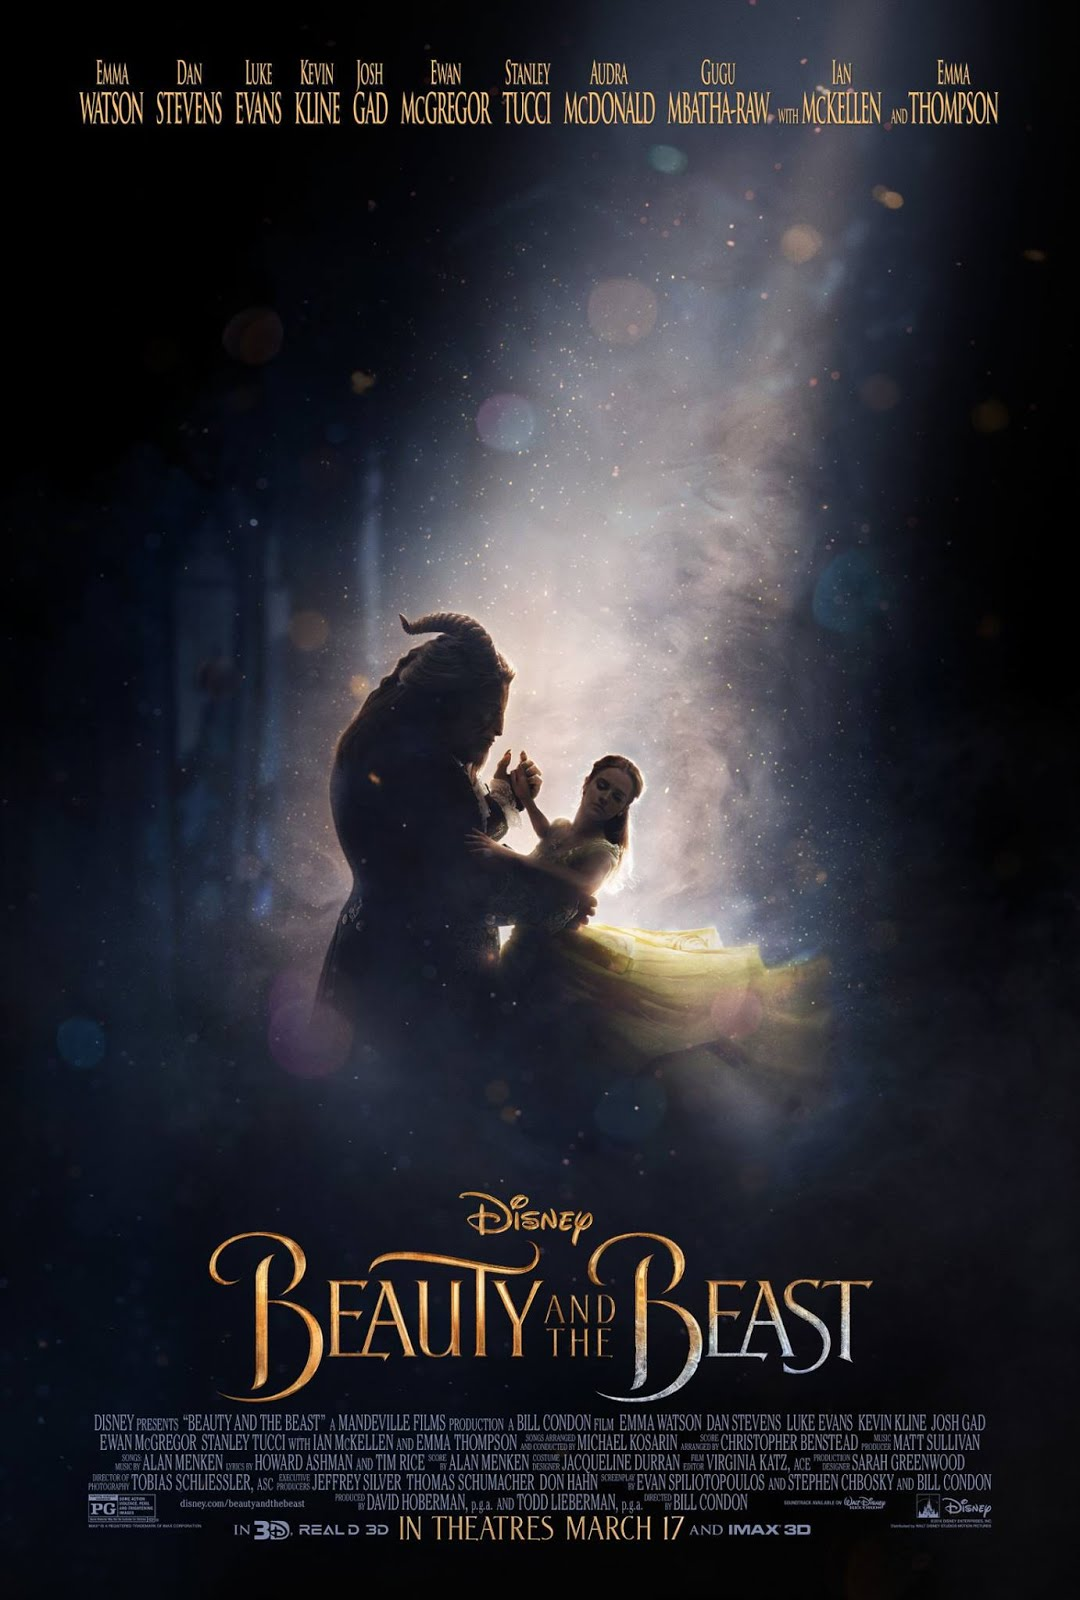 Mysterious poster design with 3d text - The Original Teaser Poster For The Film Uses The Scene Of Belle And The Beast Dancing To A Great Effect That Keeps Some Of The Mystery Of The Beast Intact